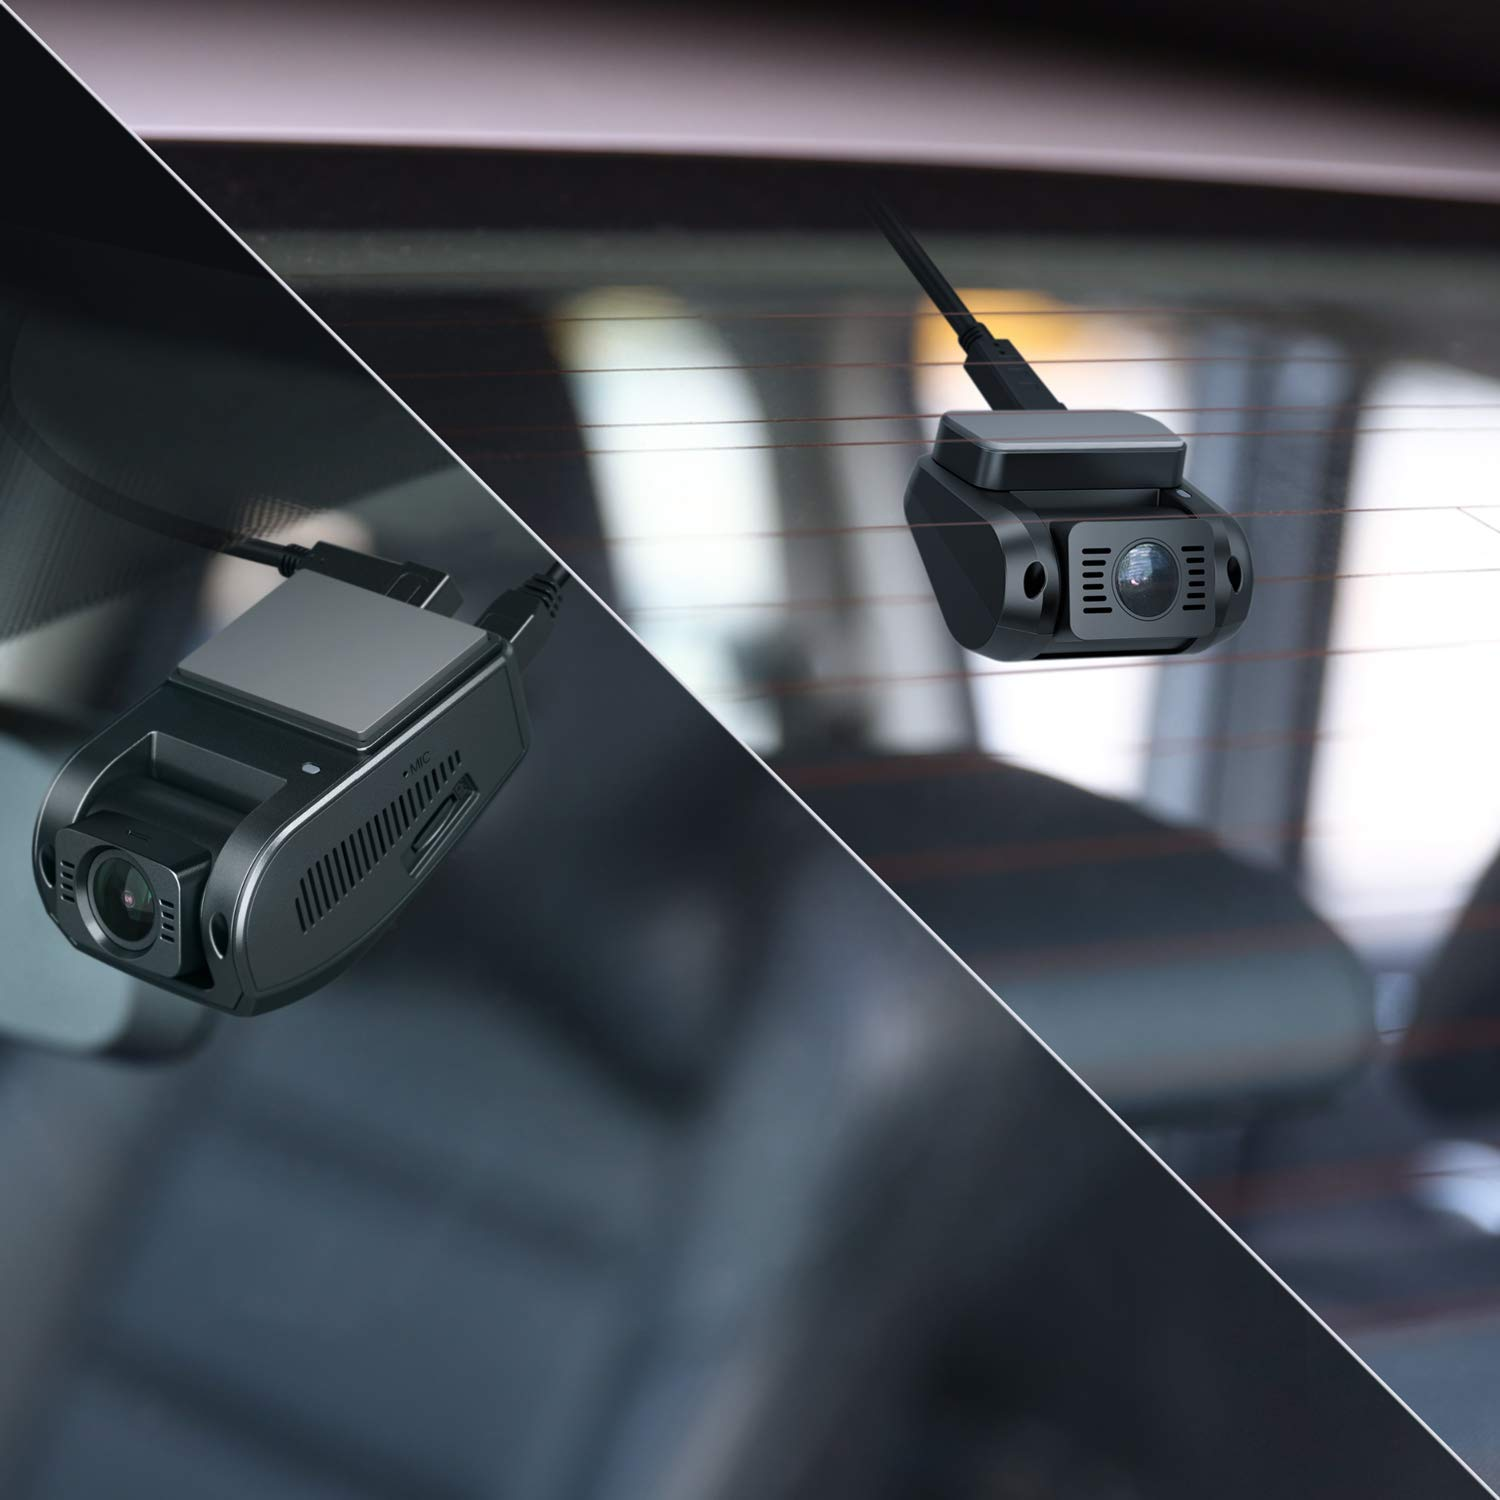 AUKEY GPS Antenna for Dashboard Cameras with 4-pin 3.5mm GPS Port and AUKEY Dash Cams